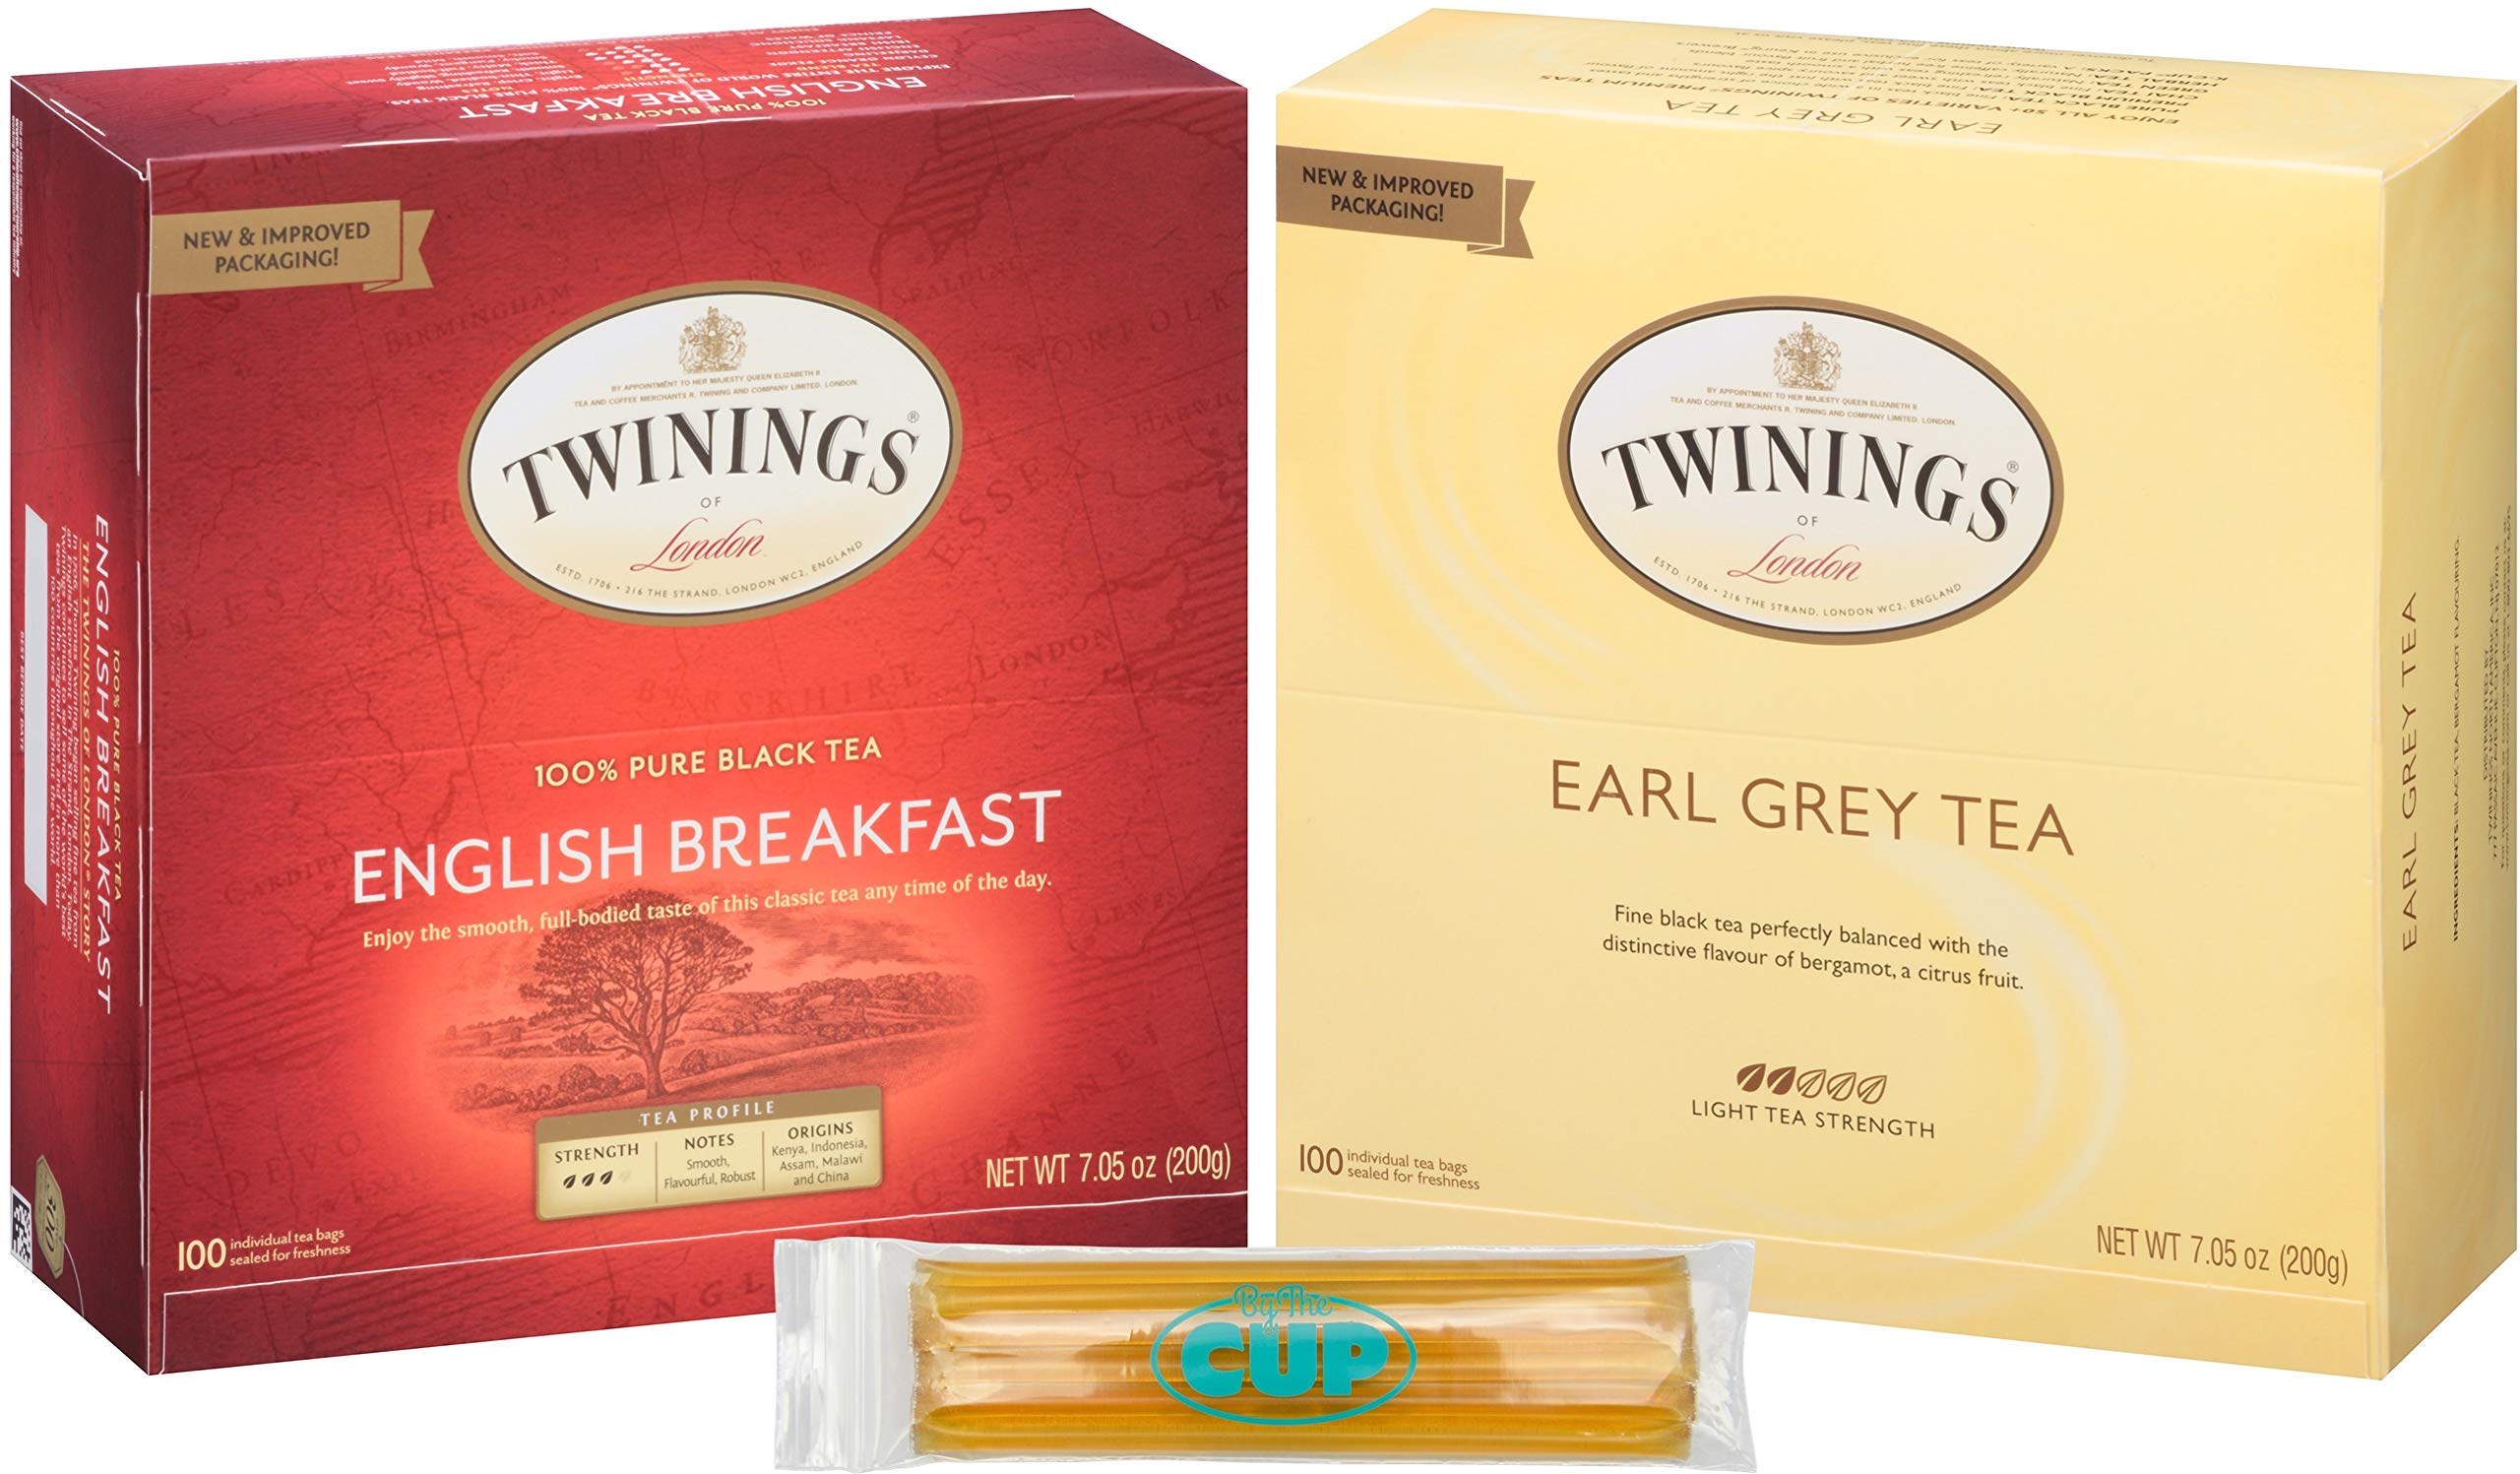 Twinings Tea 2 Flavor Herbal Tea Variety Pack English Breakfast & Earl Grey Combo 100 Count Box of Each with By The Cup Honey Sticks